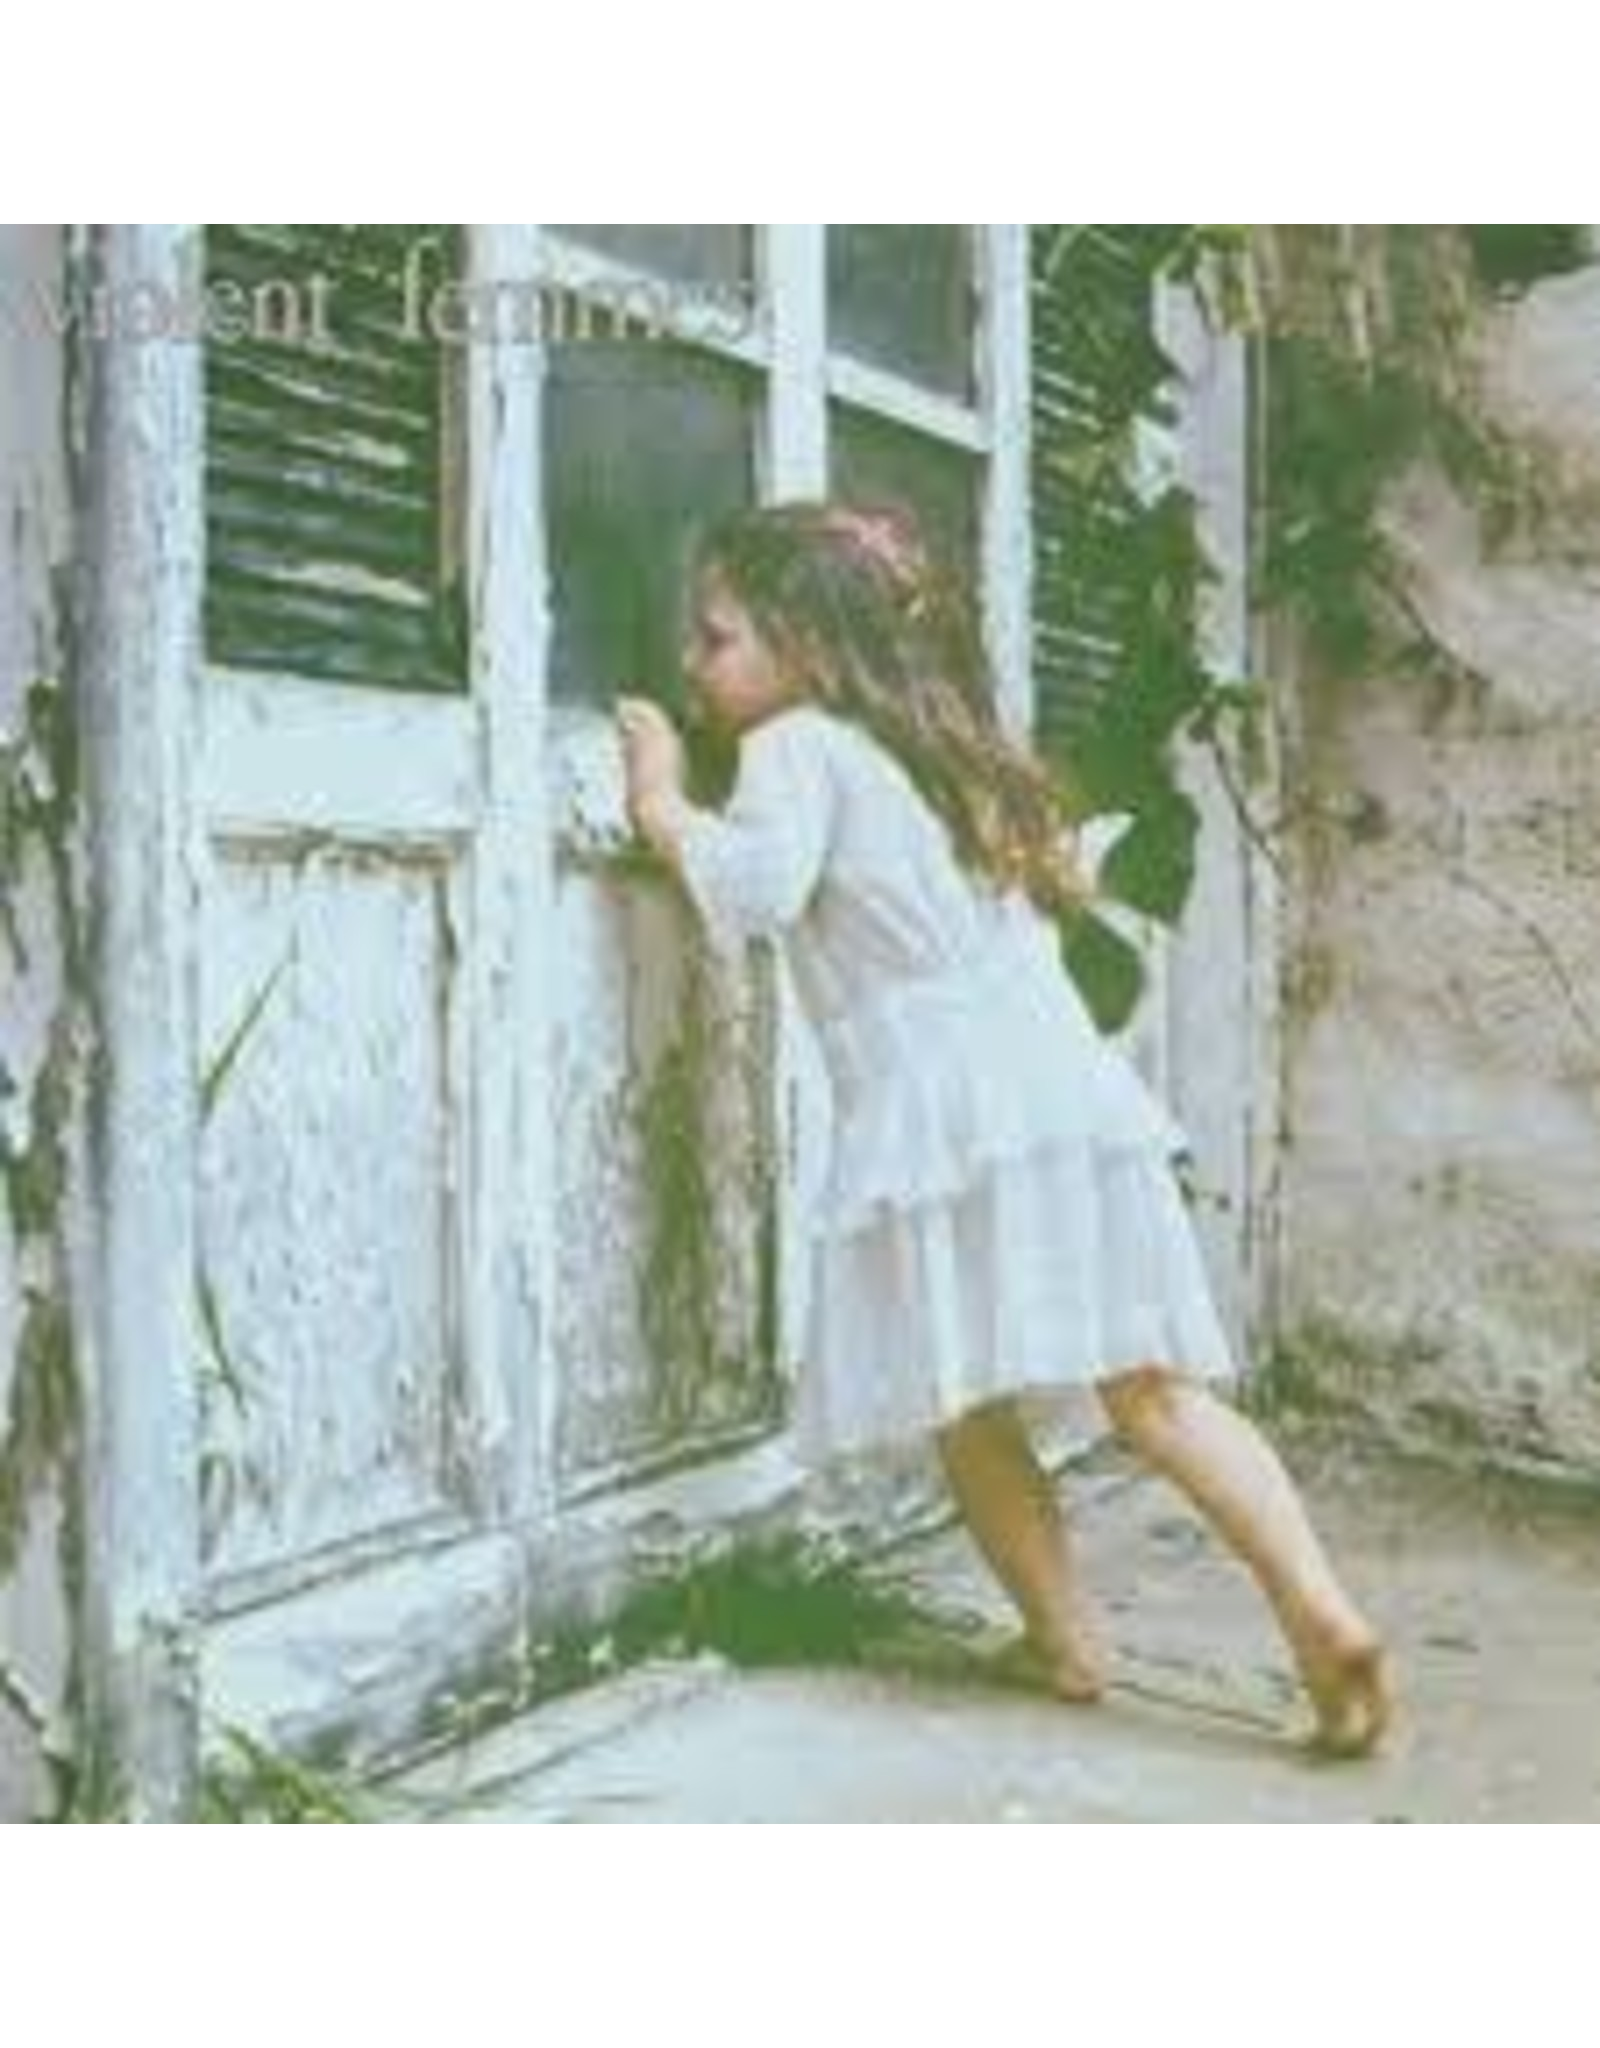 Violent Femmes - Violent Femmes 35th Anniversary LP